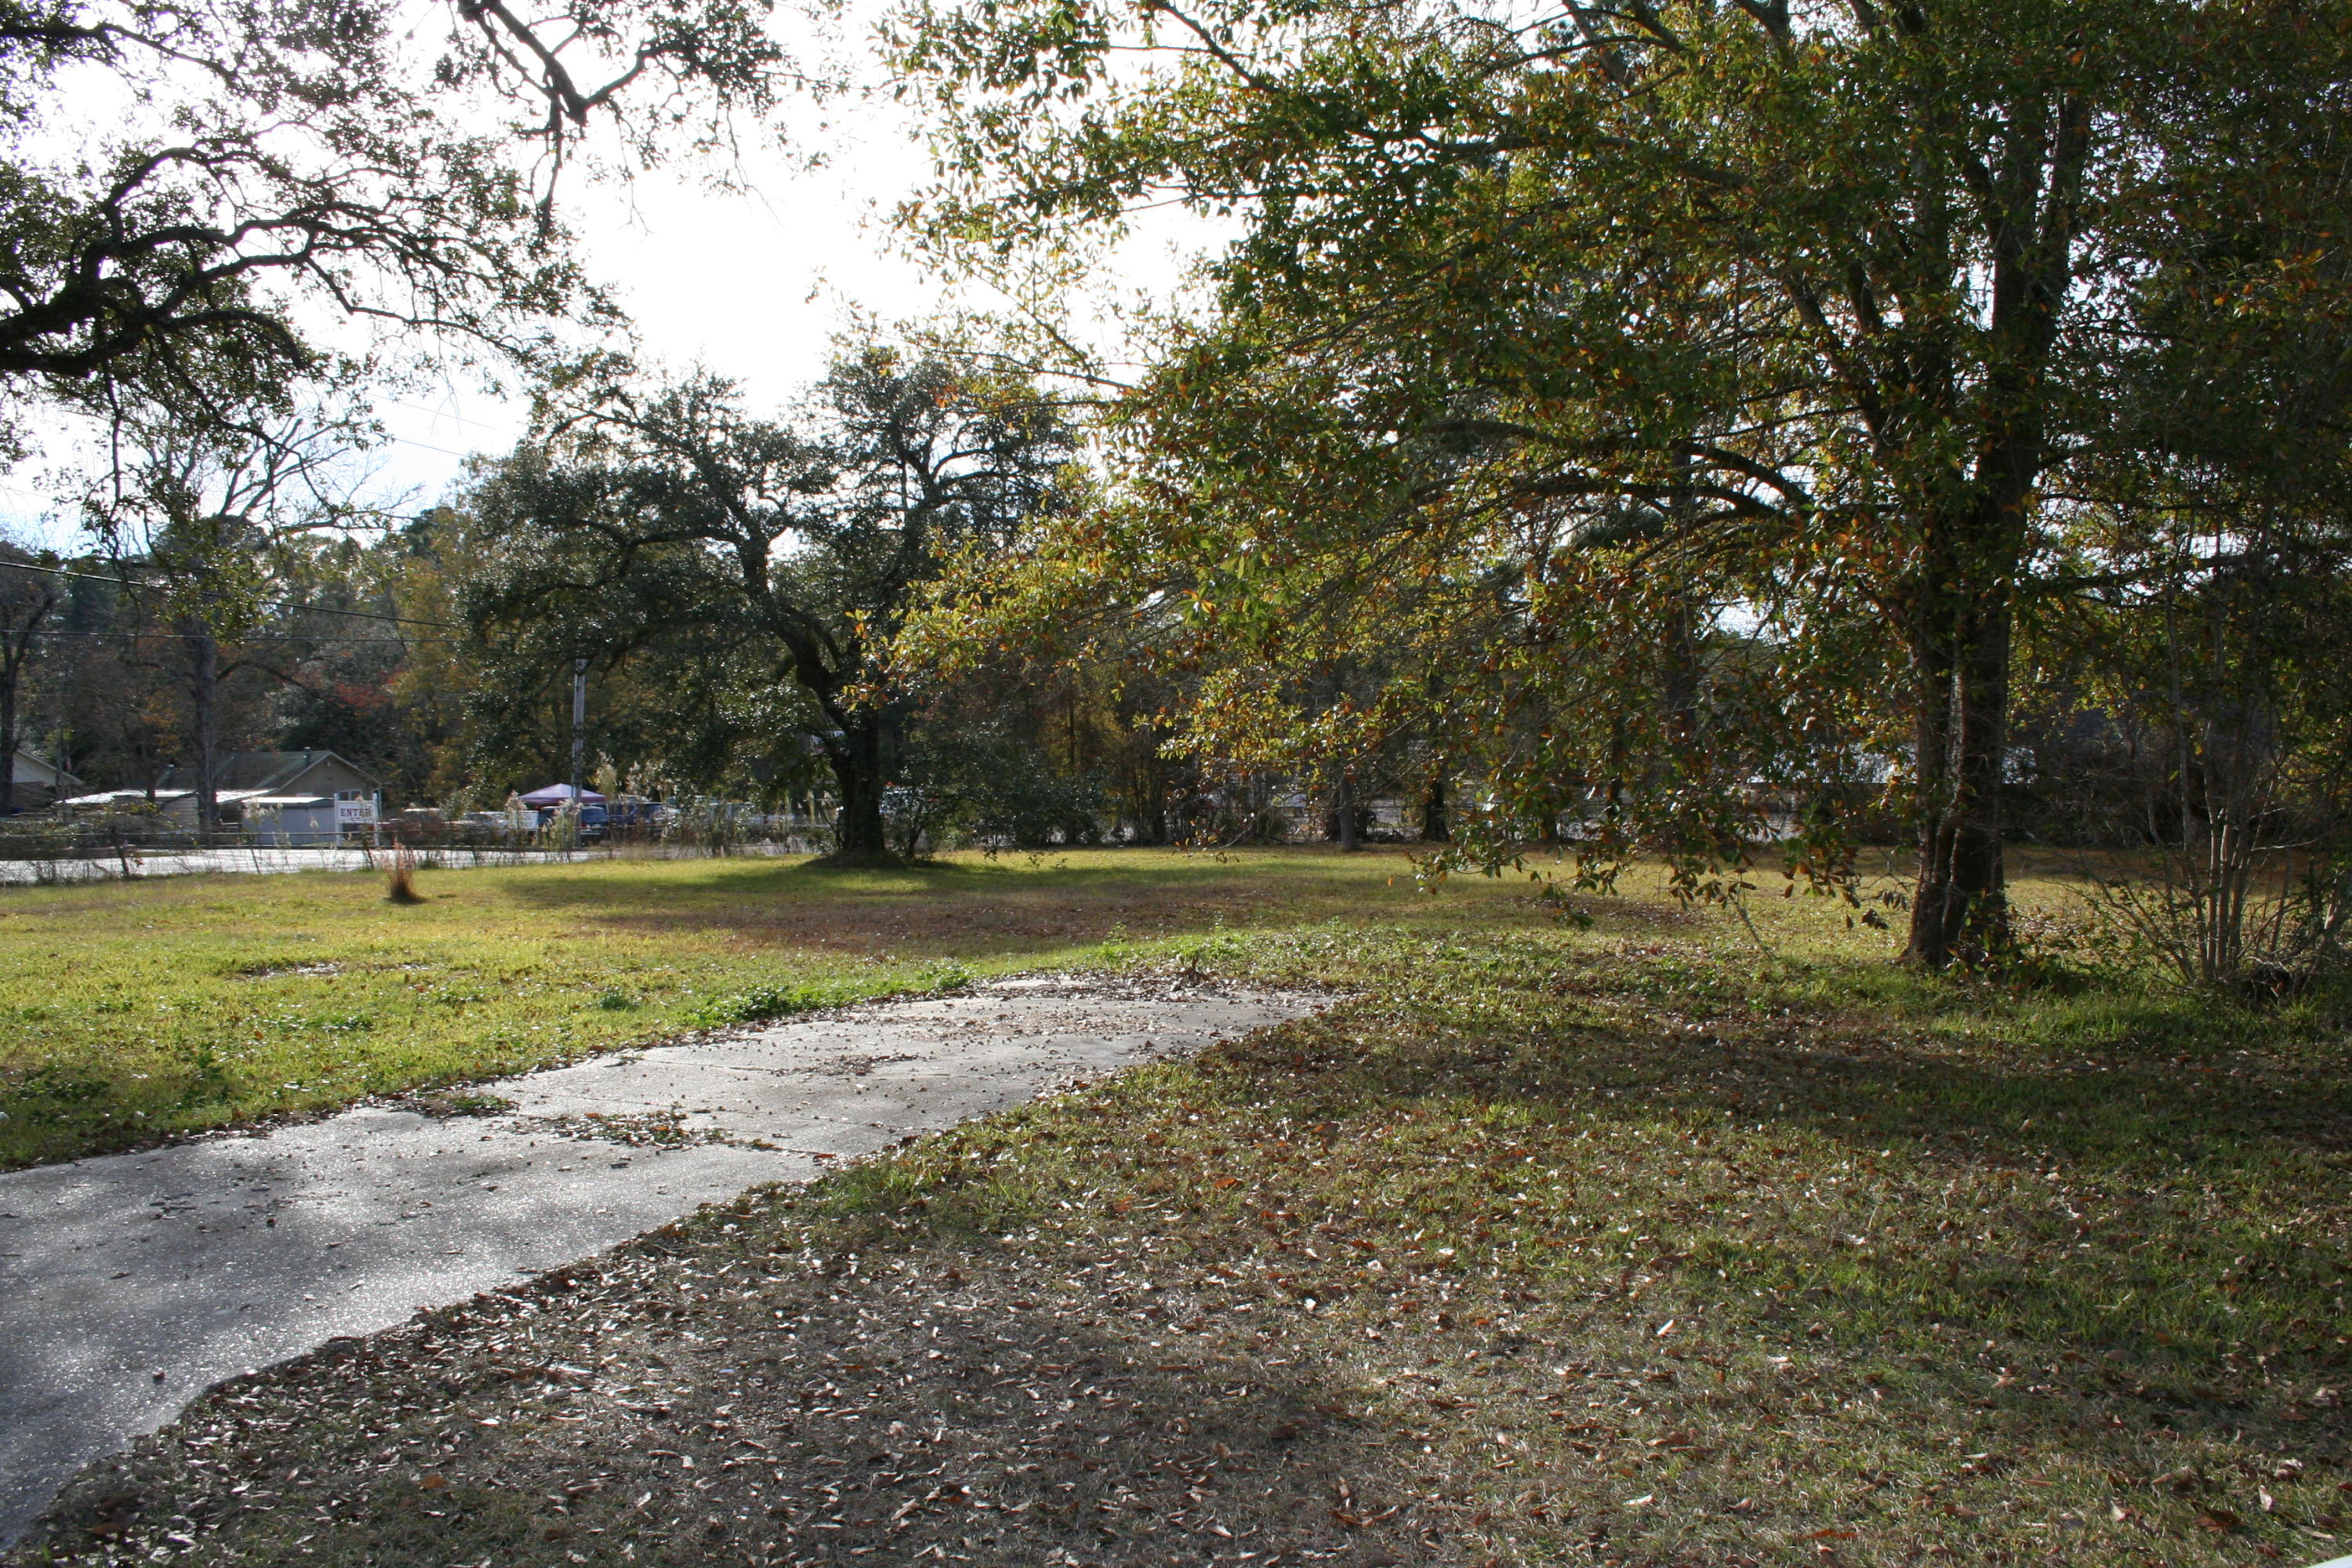 Leesville land for sale,  TBD Texas Hwy 8 & Gladys St, Leesville LA - $65,000